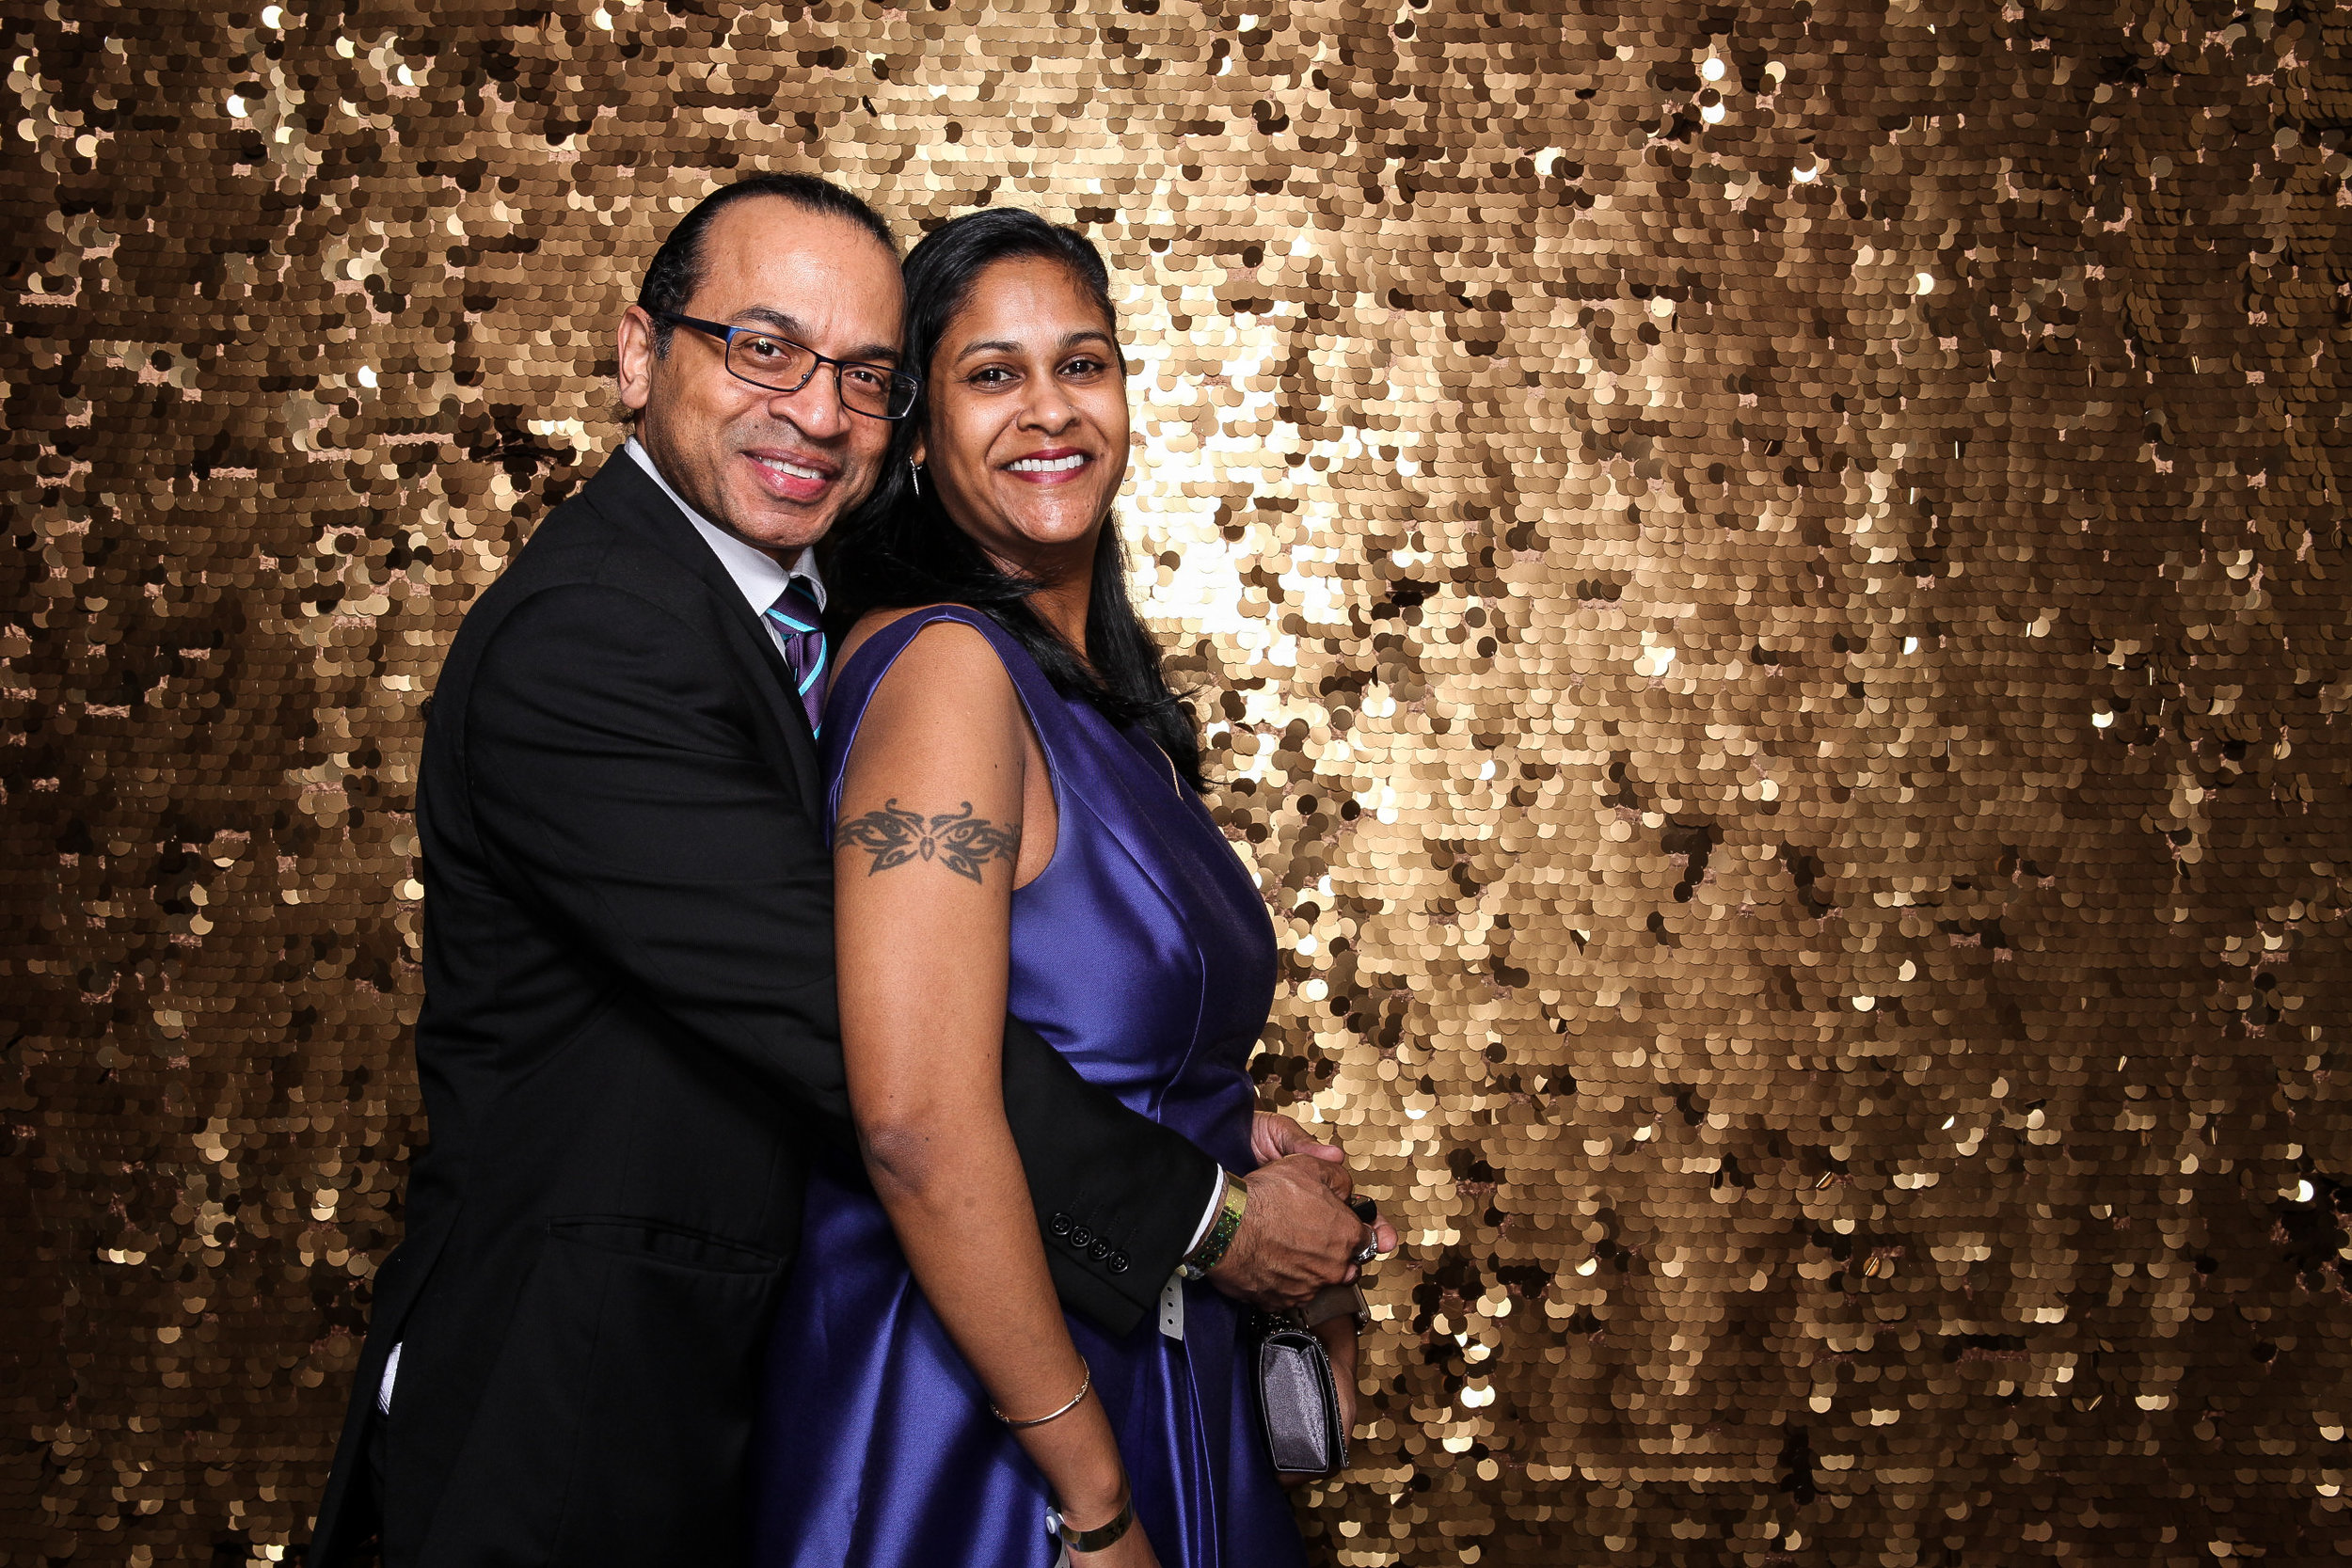 20190503_Adelphi_Senior_Formal-196.jpg